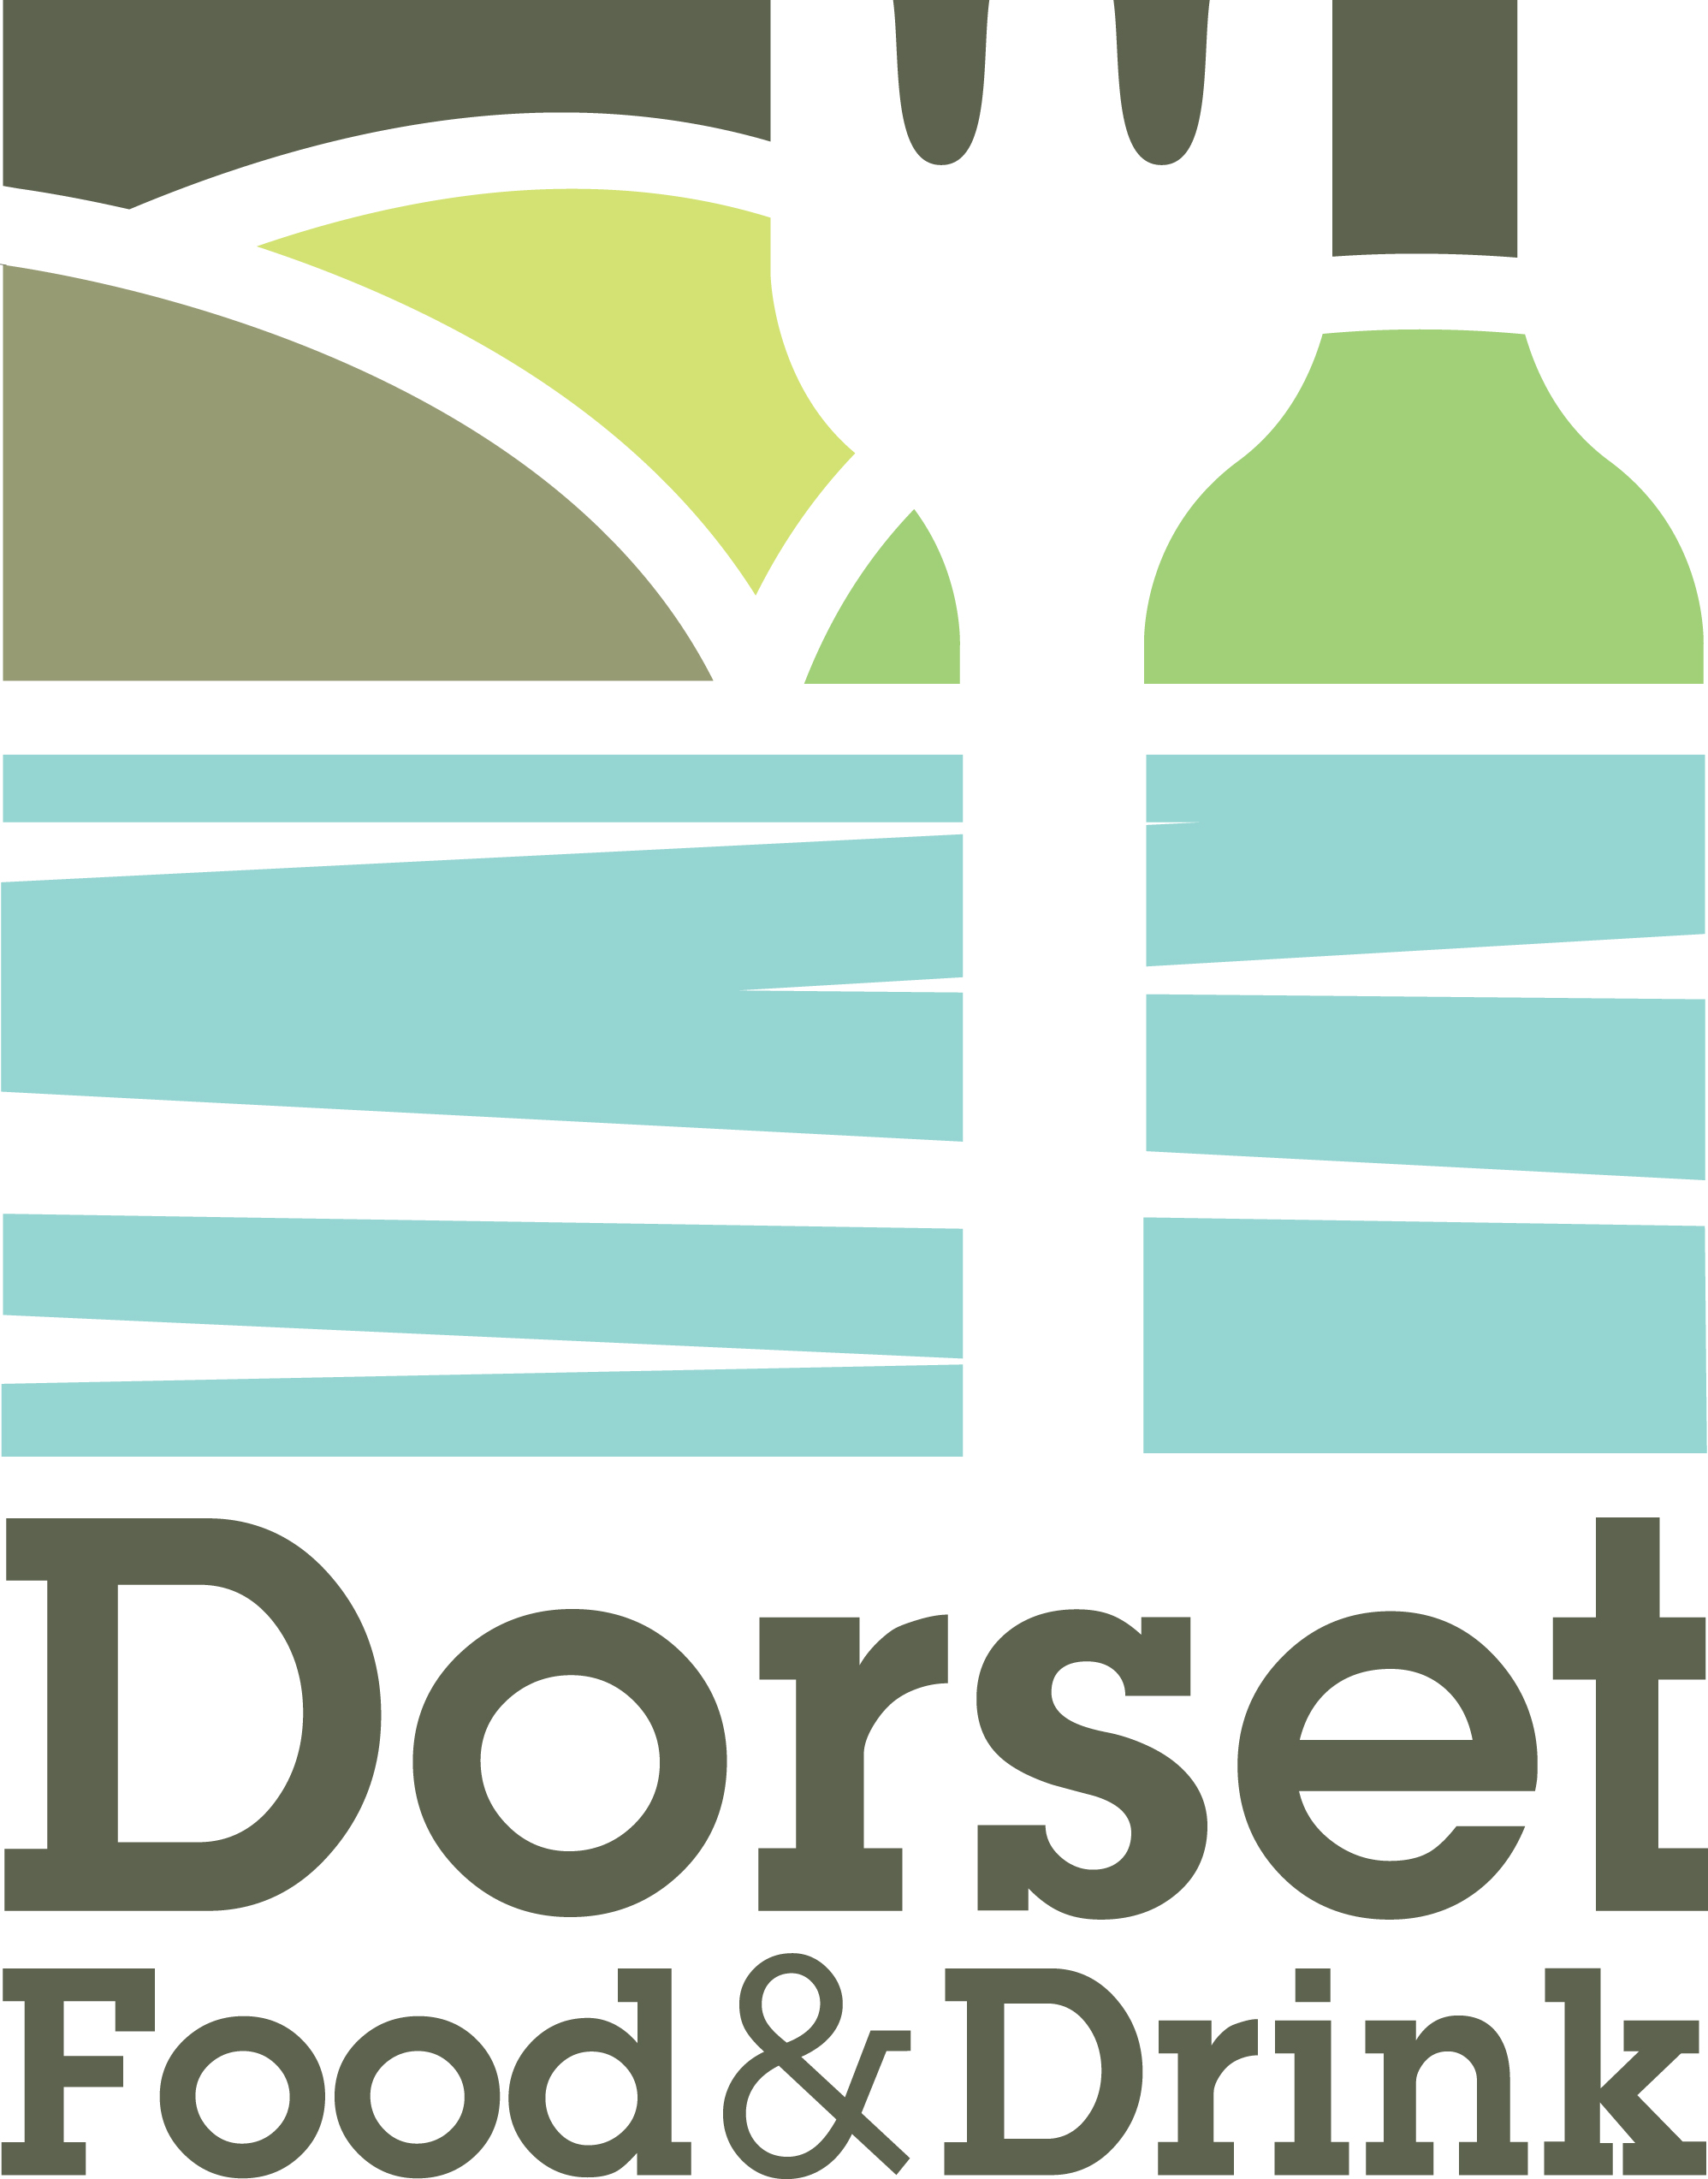 Dorset Food & Drink